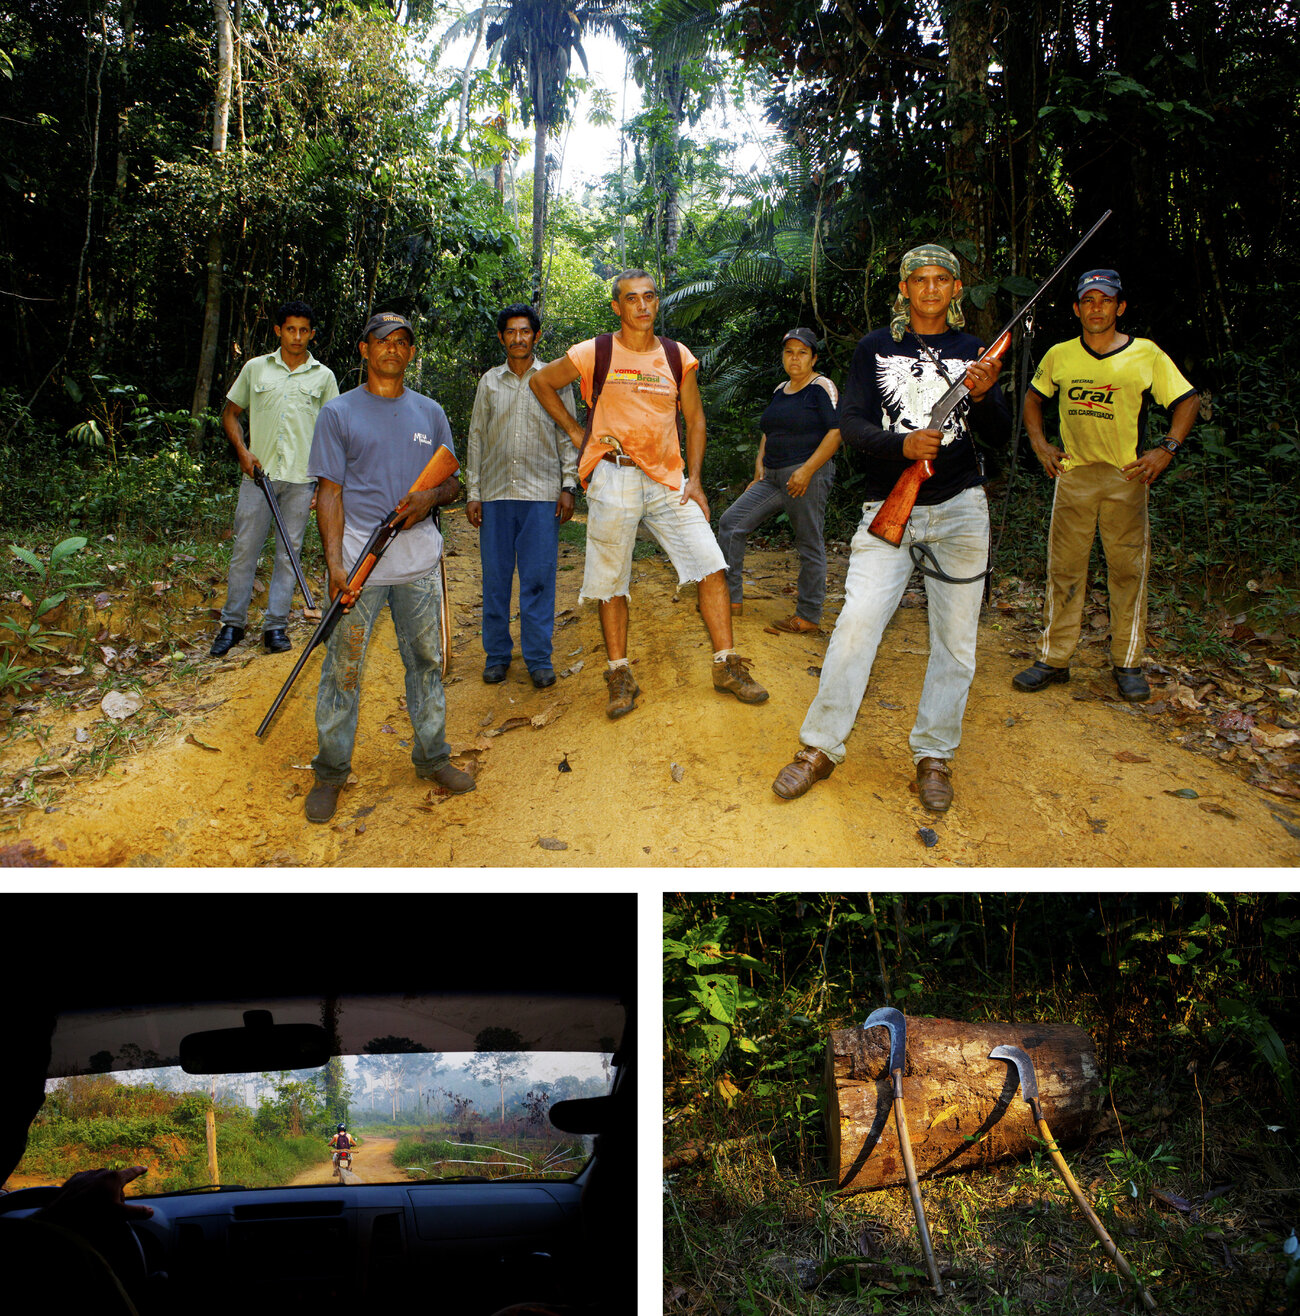 Elizeu Berçacola leads this group of rubber tappers who fight to prevent illegal logging.